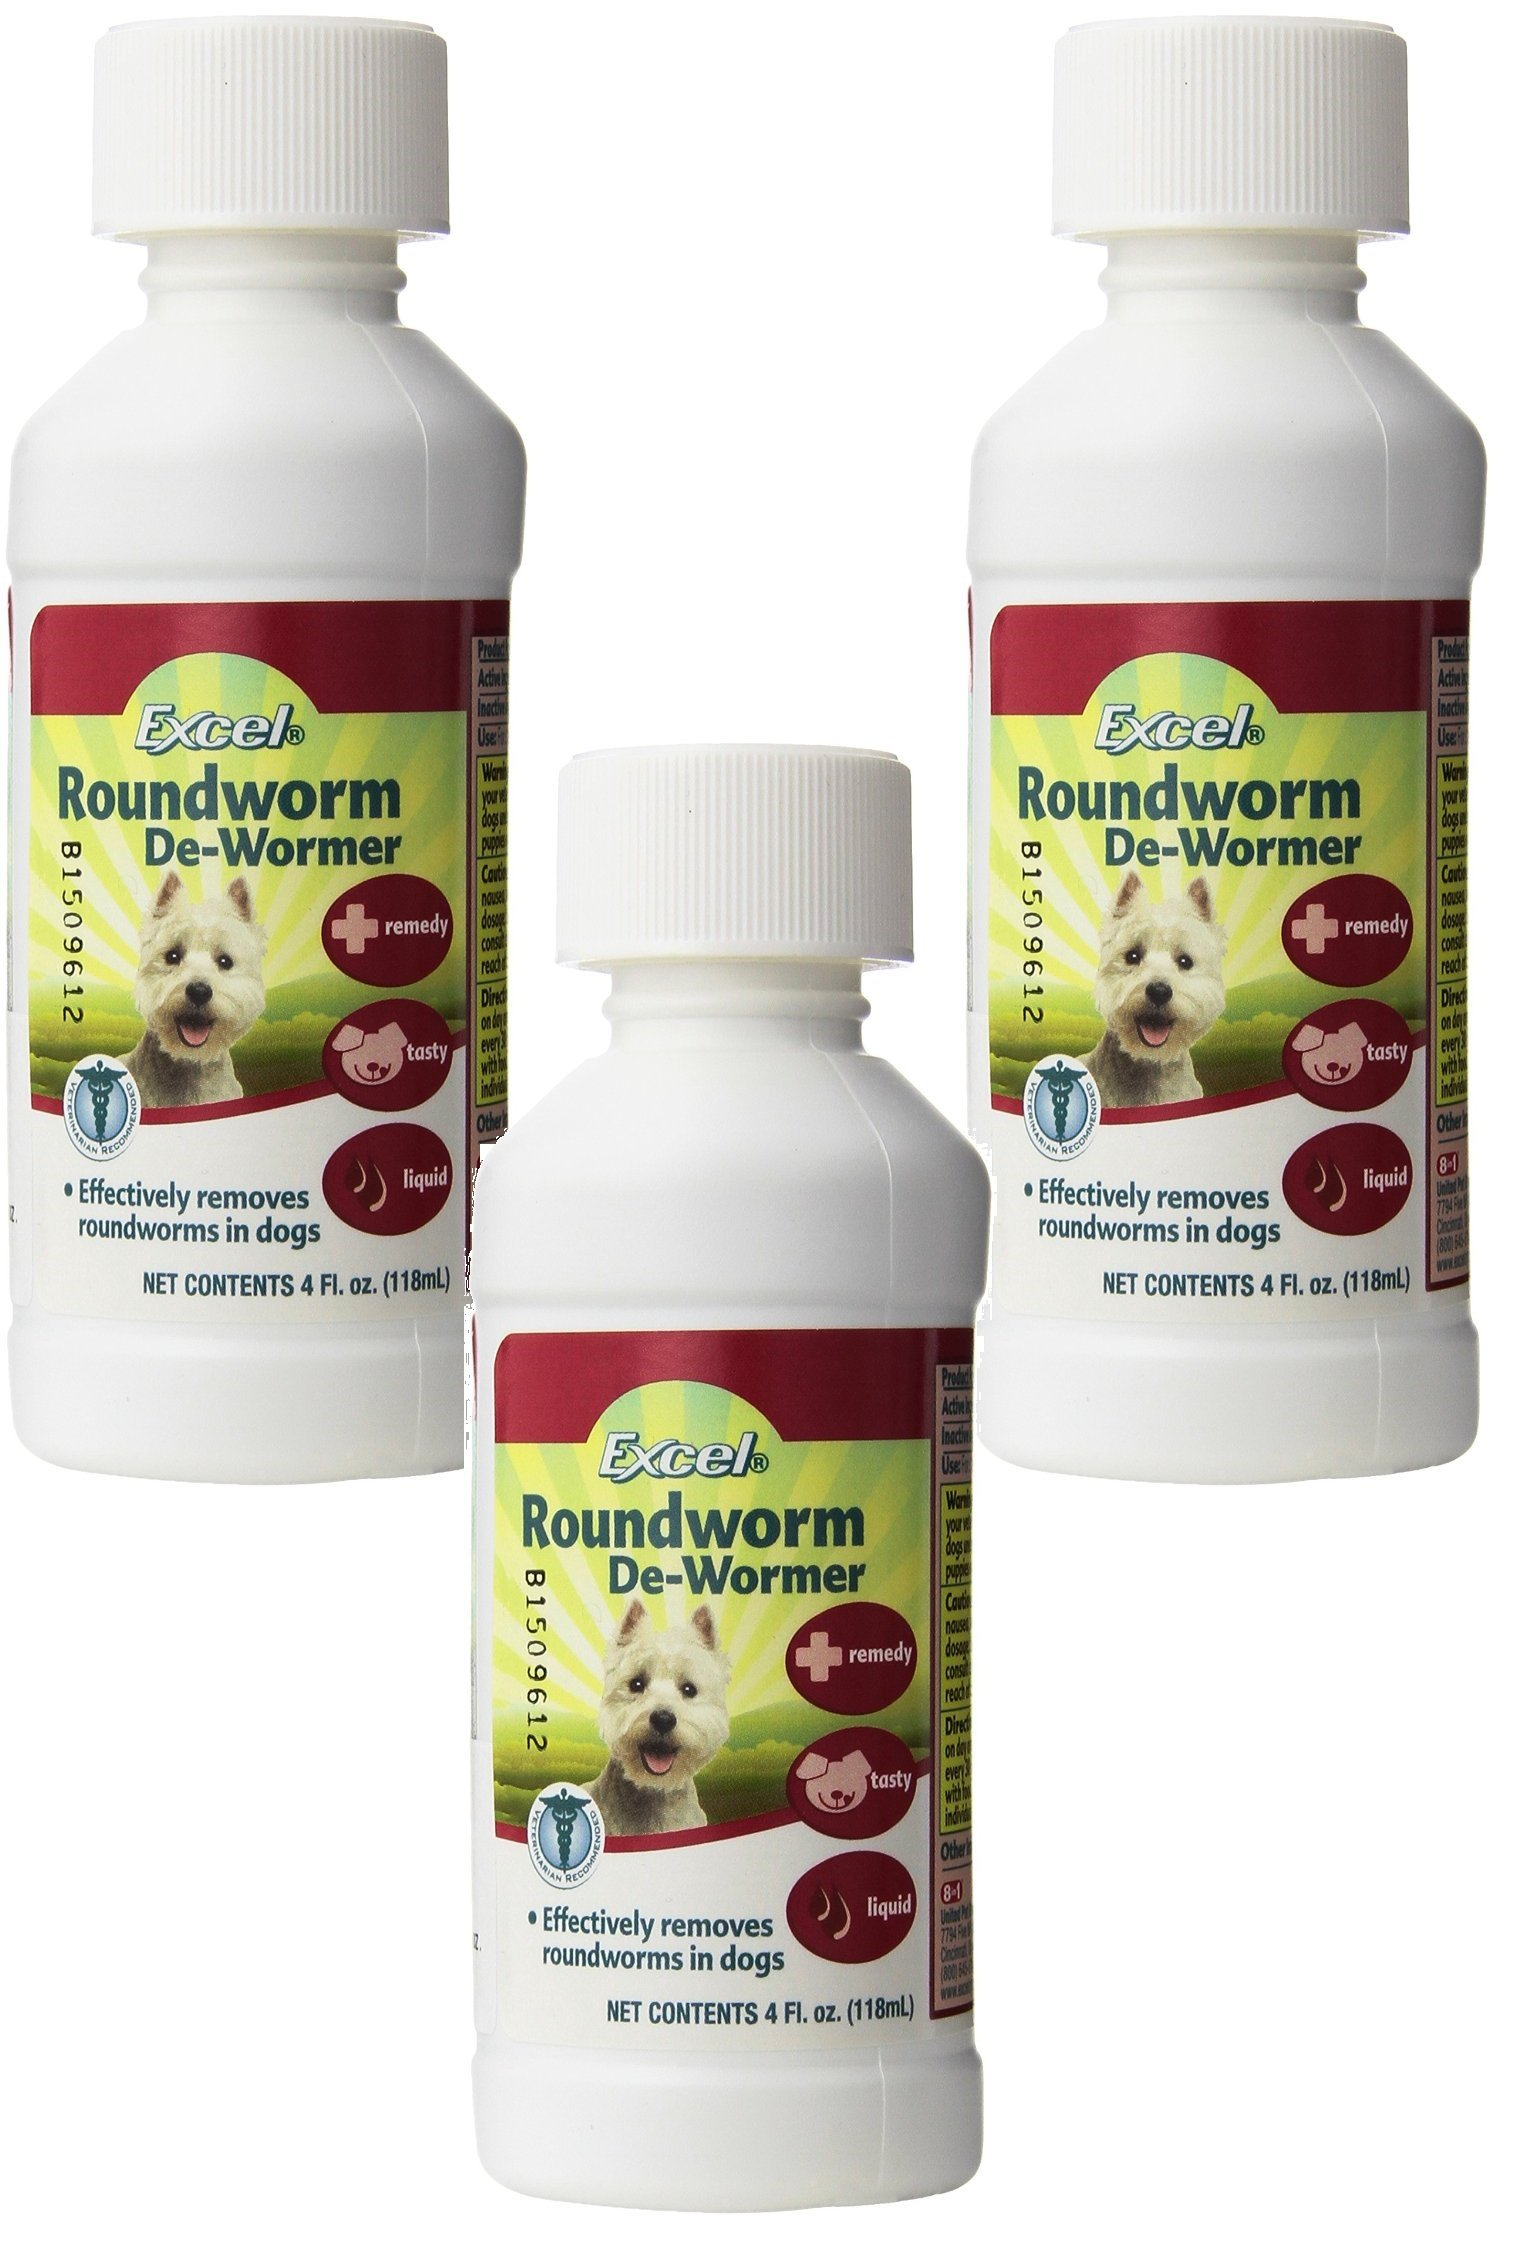 Excel Roundworm Liquid Dog De-Wormer, 4-Ounce each (3 Pack) by Excel